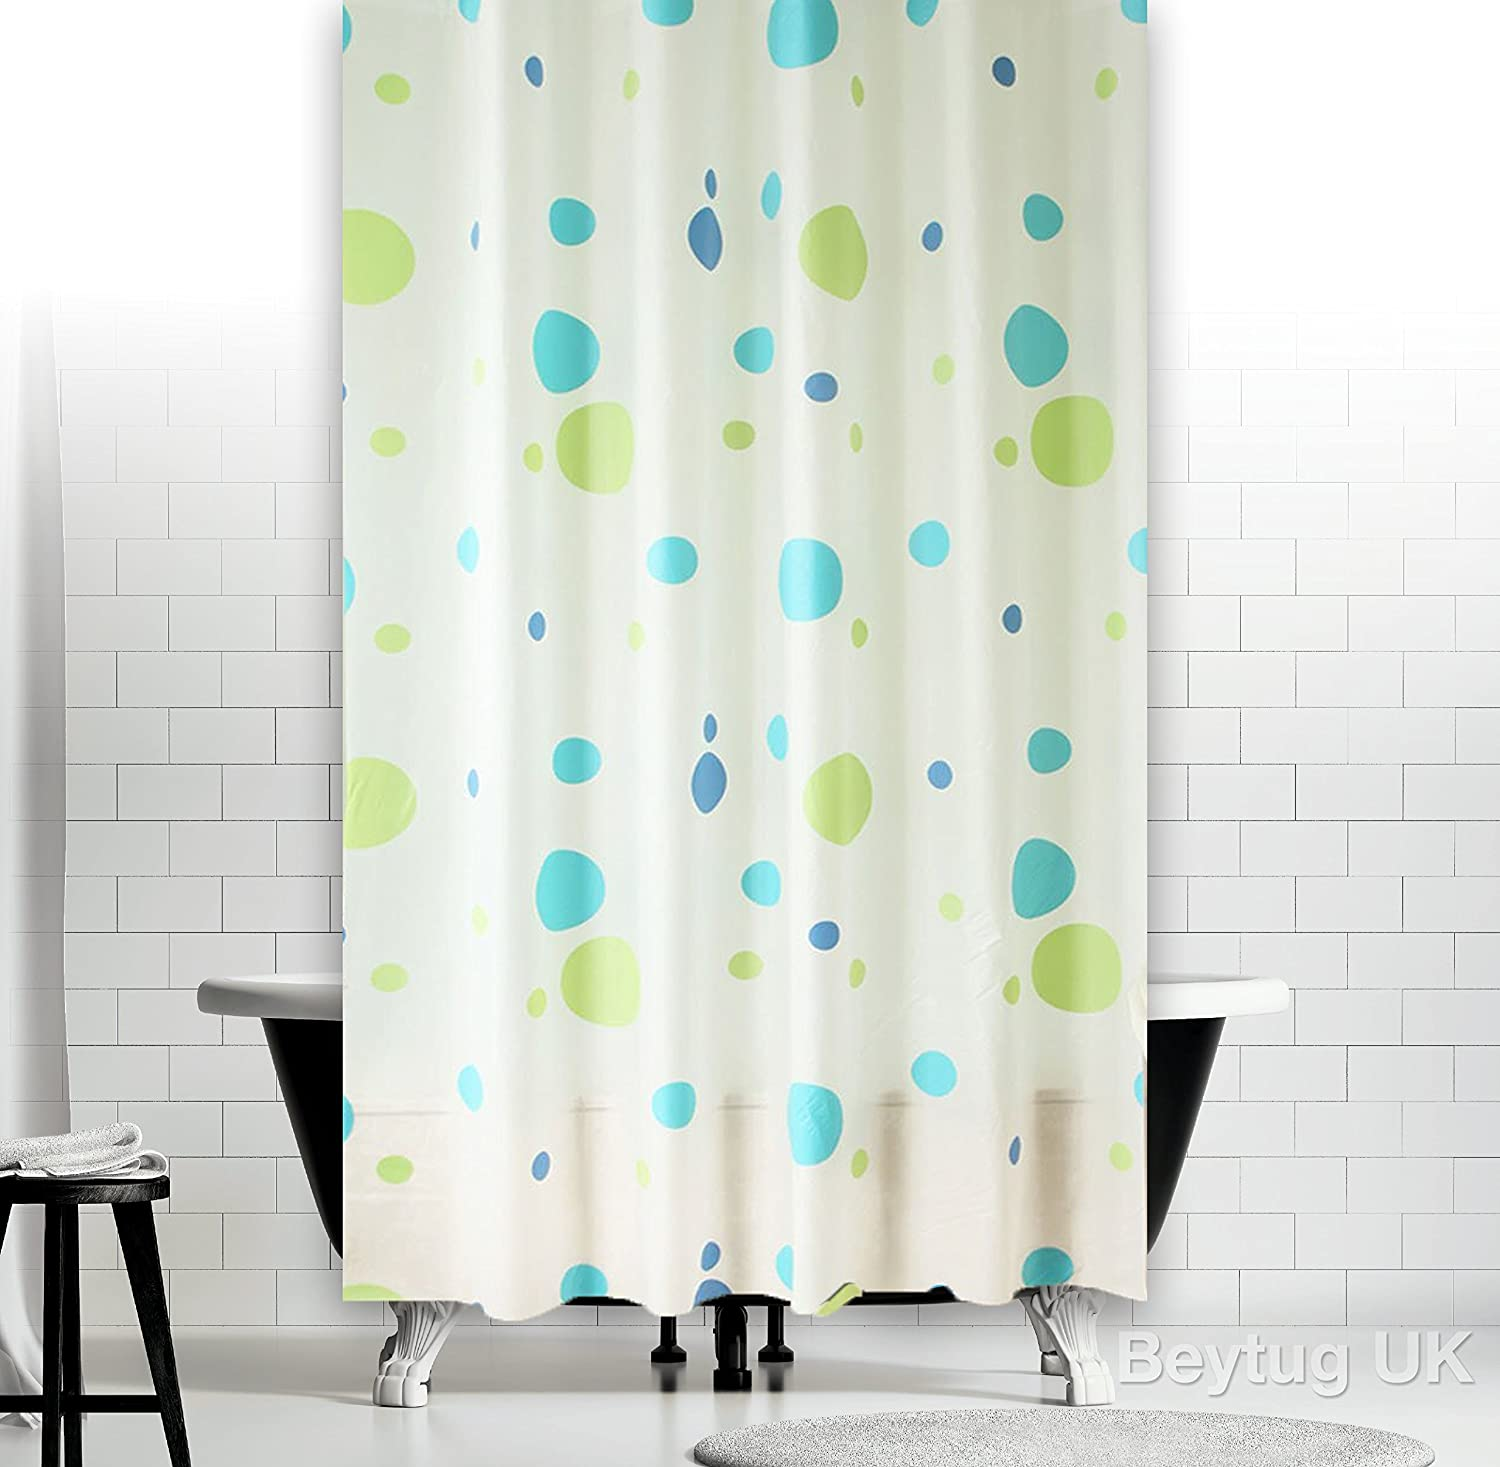 Funky shower curtains - New Funky Bathroom Shower Curtain Extra Long With Rings 180 X 200 Cm Playful Amazon Co Uk Kitchen Home